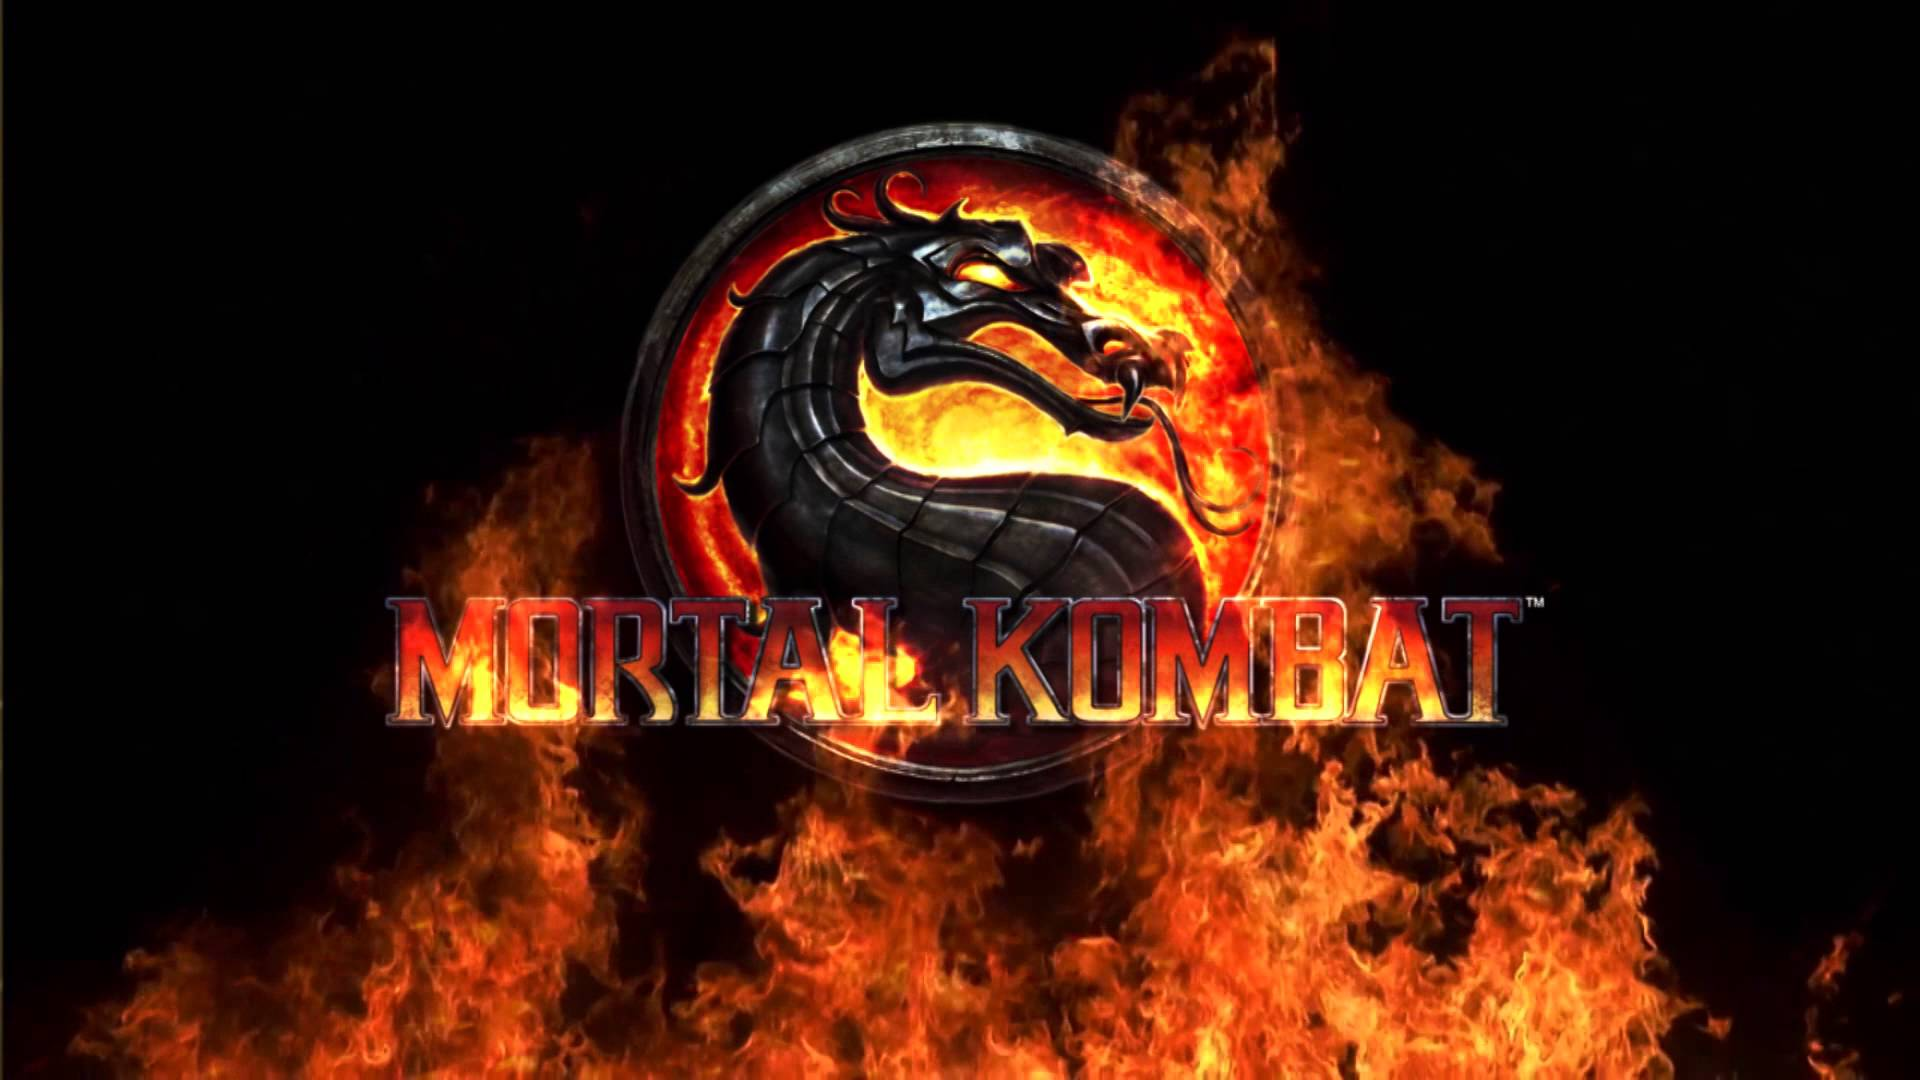 Mortal Kombat movie casts Liu Kang, Raiden, Jax and Mileena